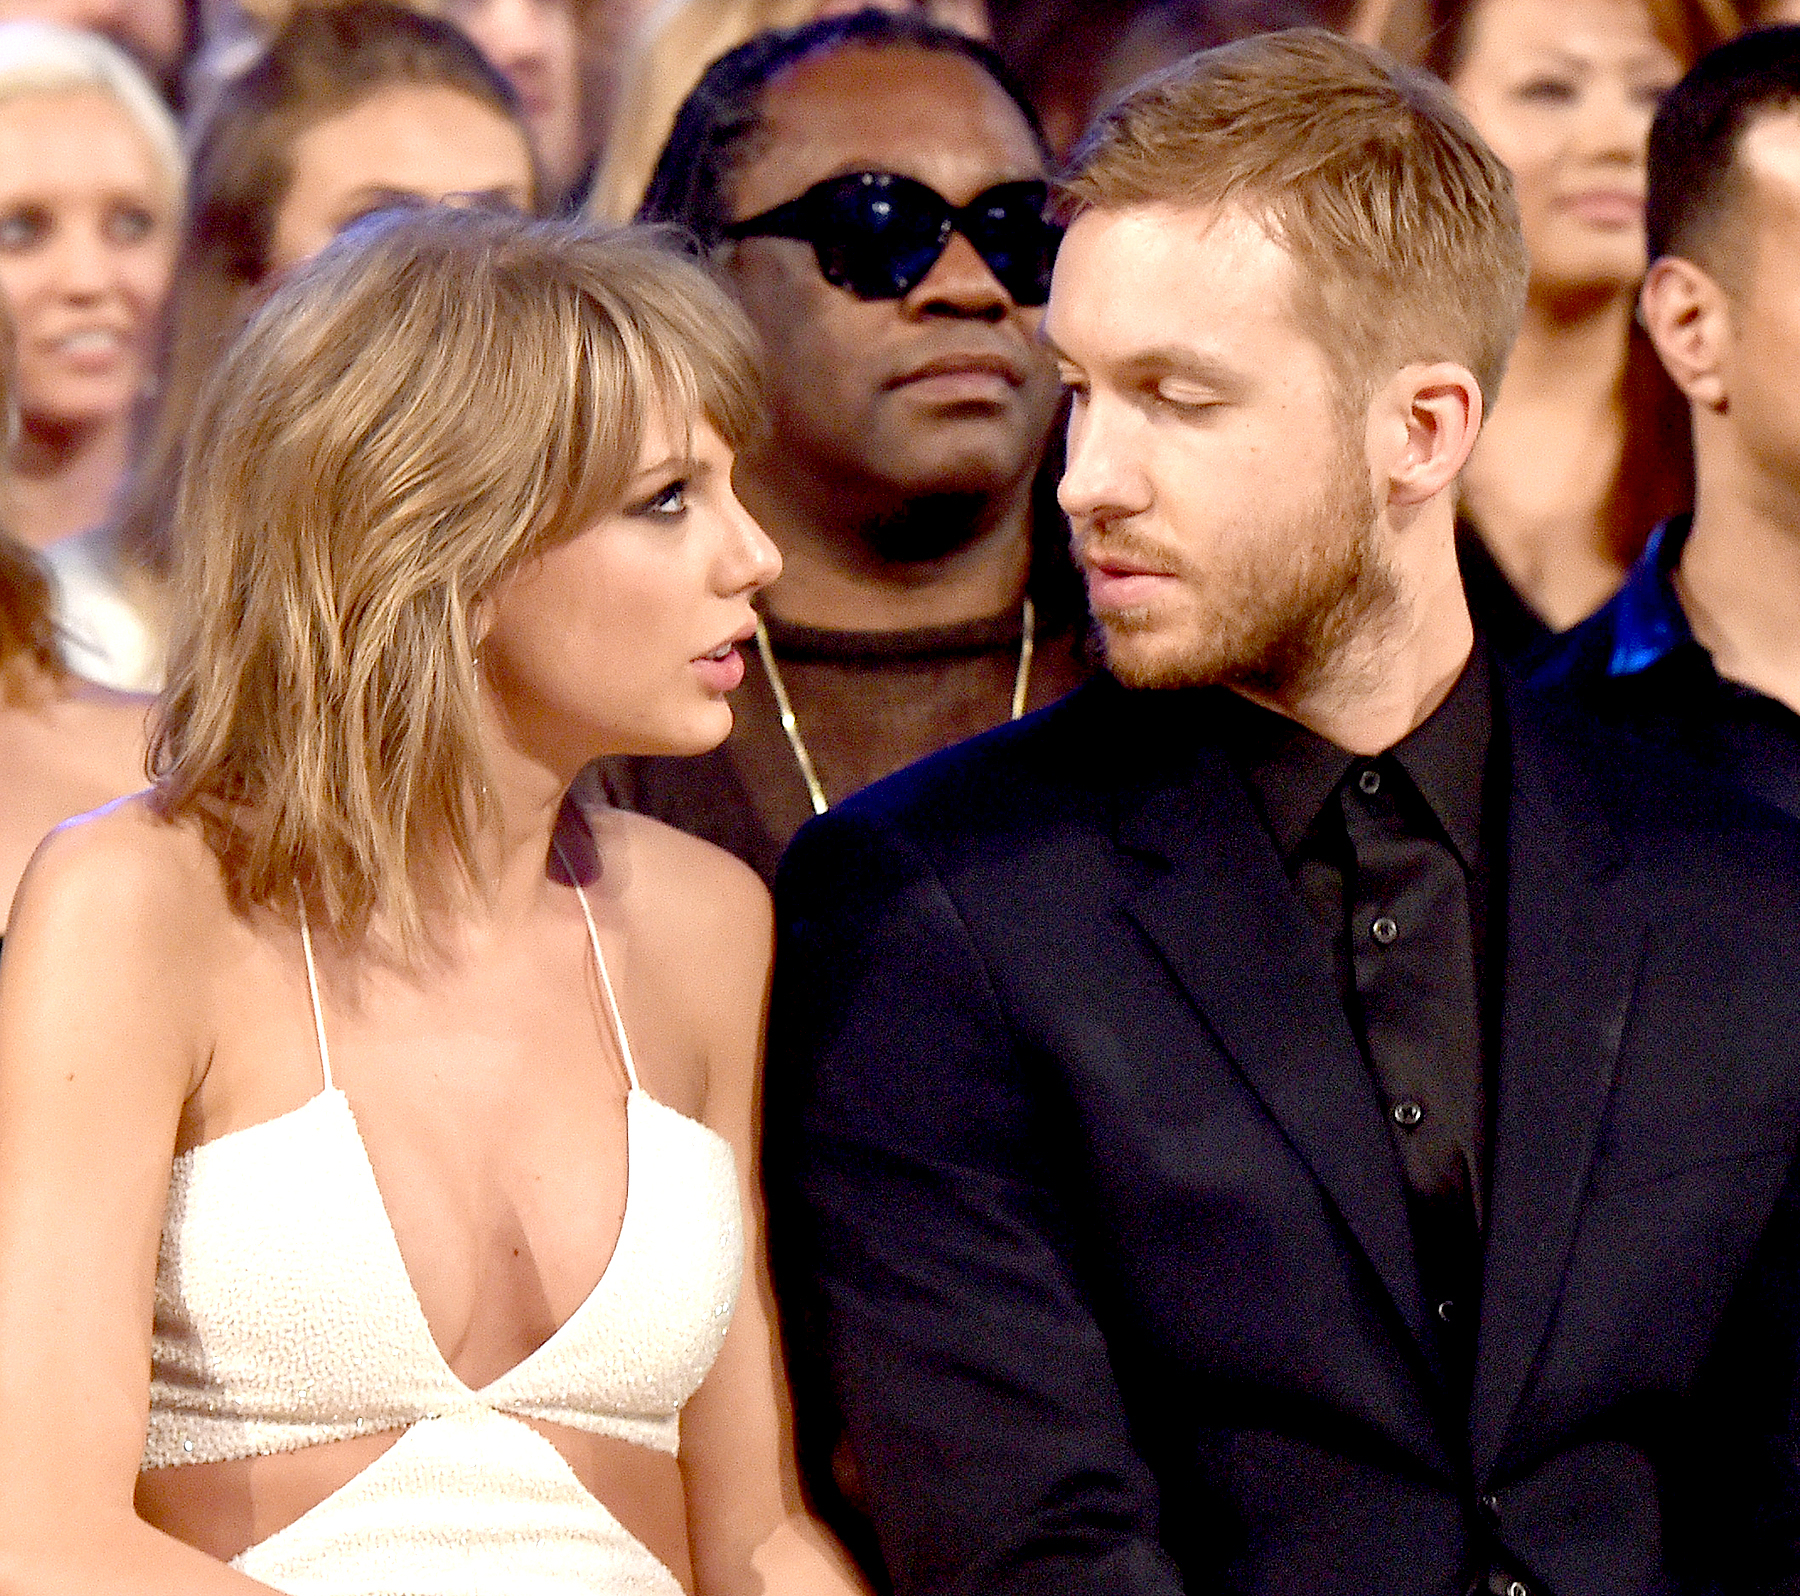 Taylor Swift and Calvin Harris attend the 2015 Billboard Music Awards at MGM Grand Garden Arena on May 17, 2015 in Las Vegas, Nevada.